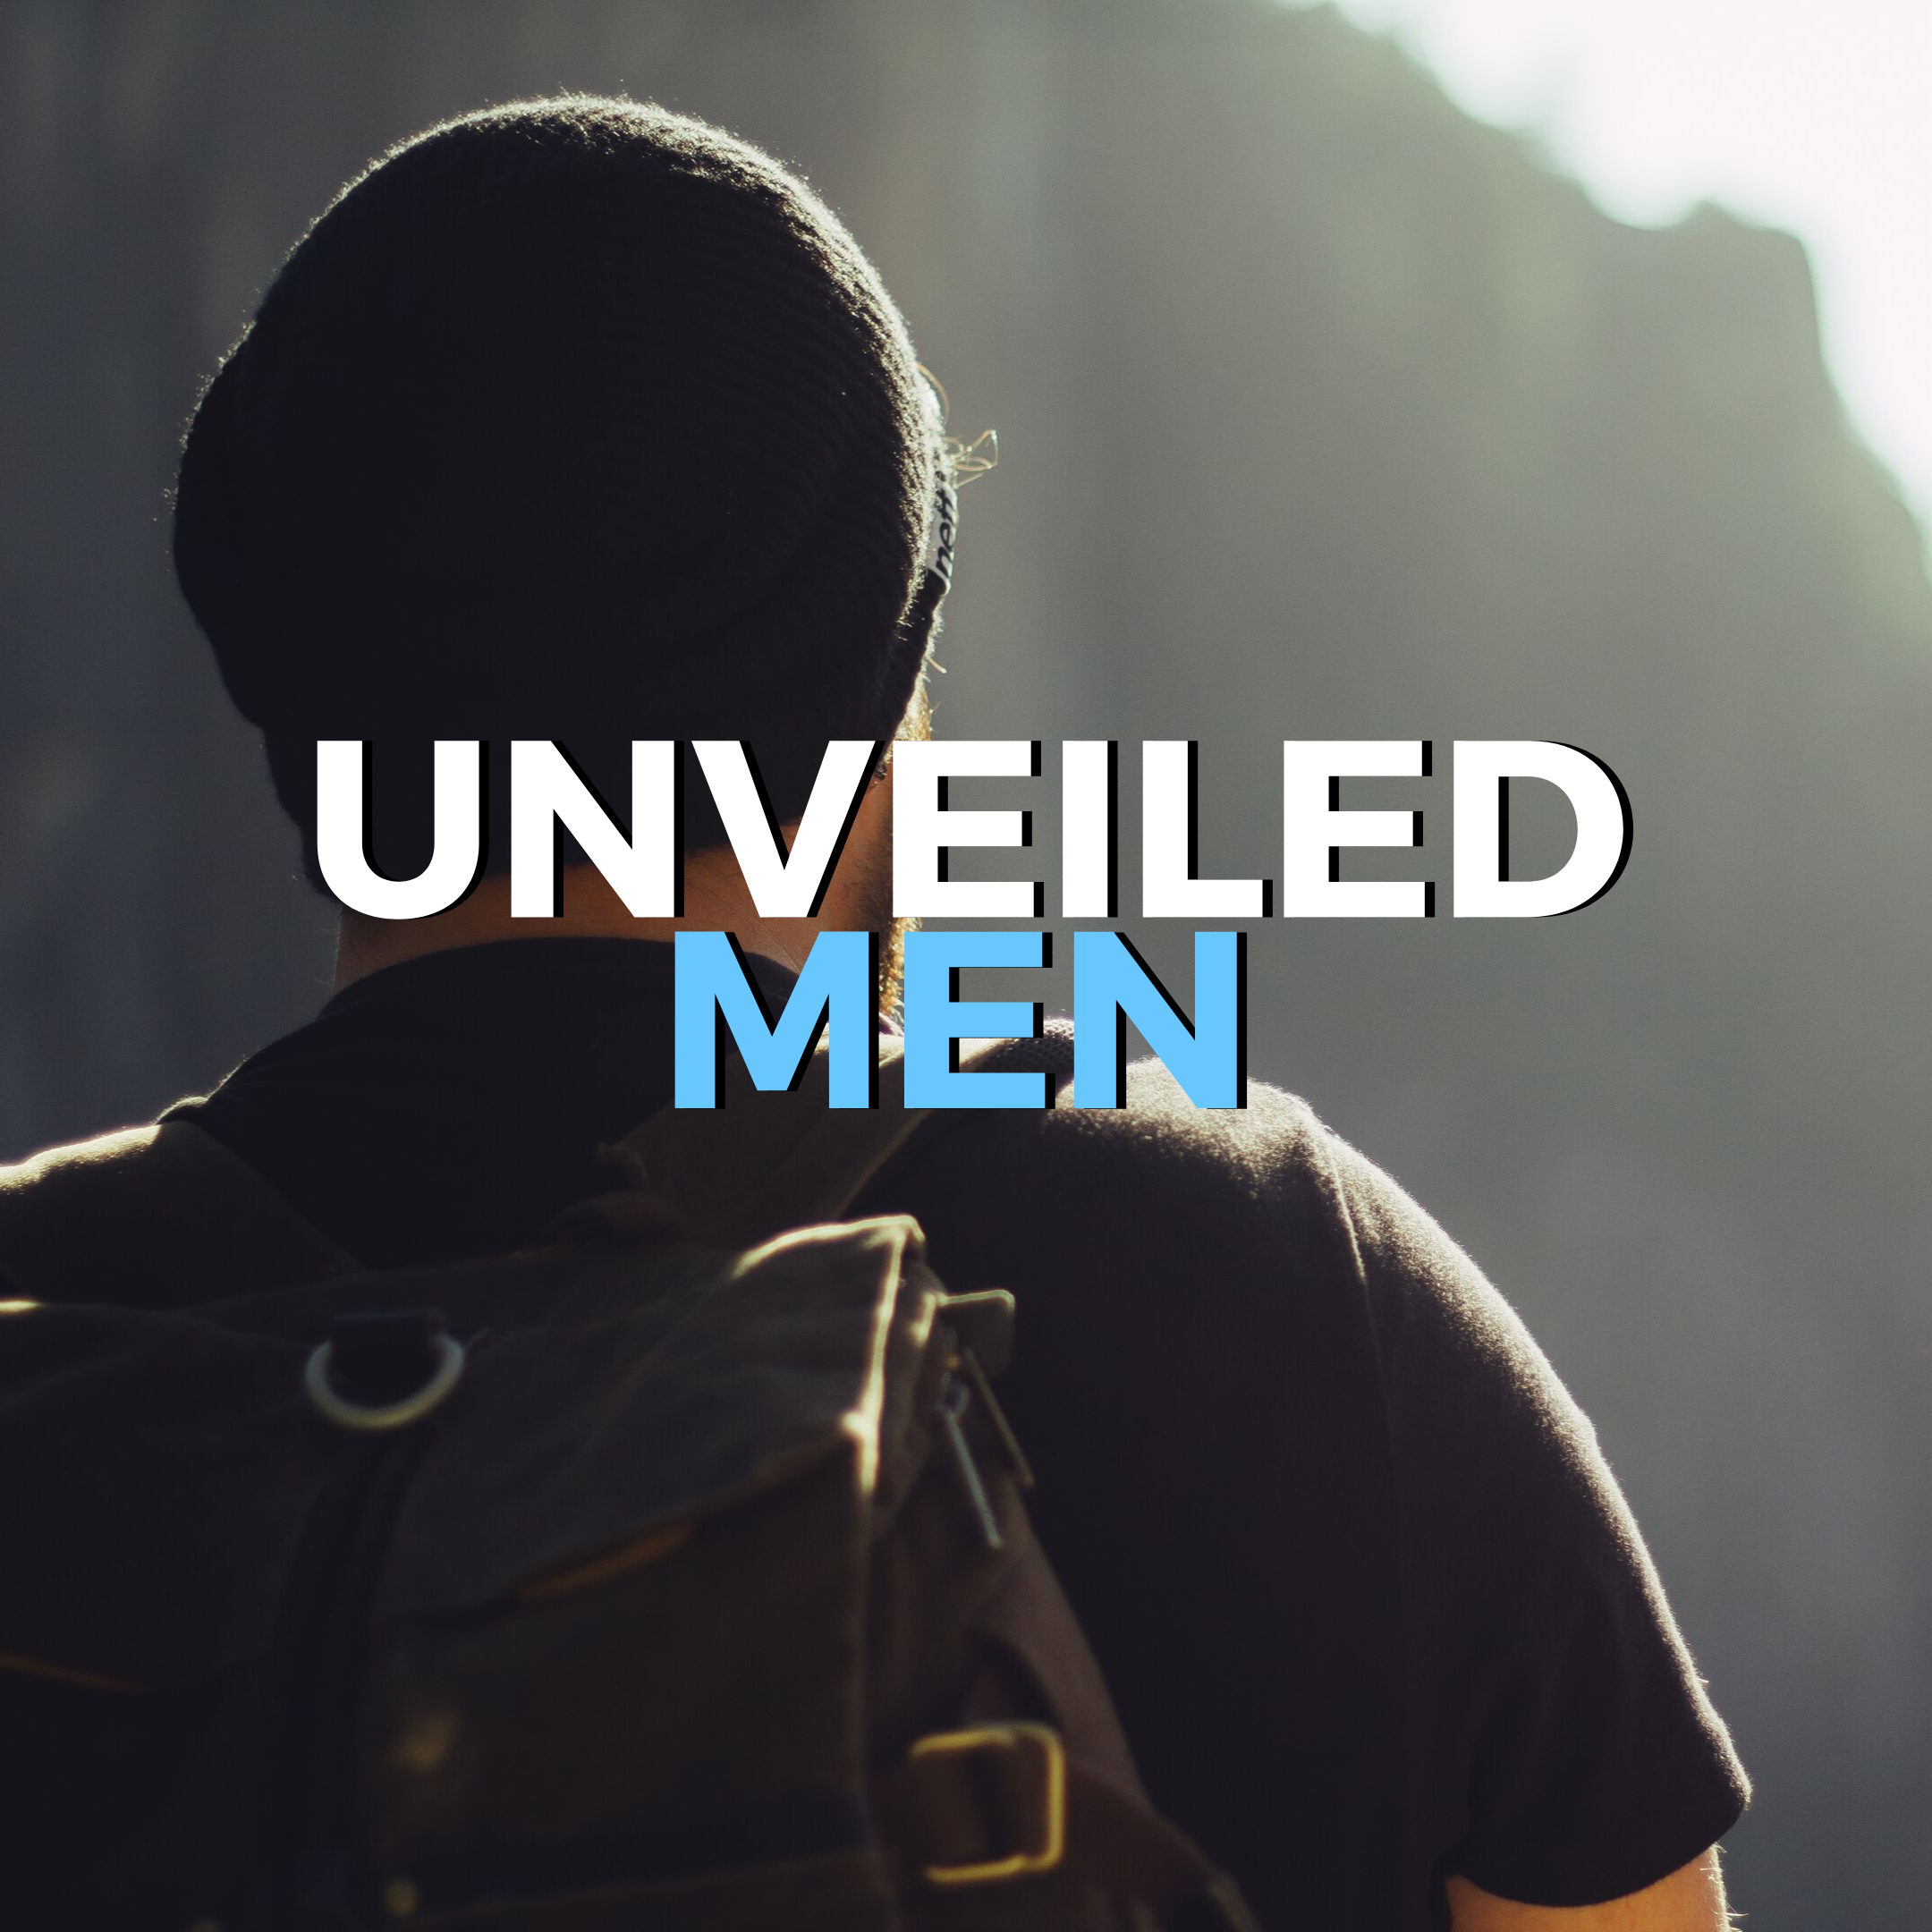 UNVEILED MEN.png